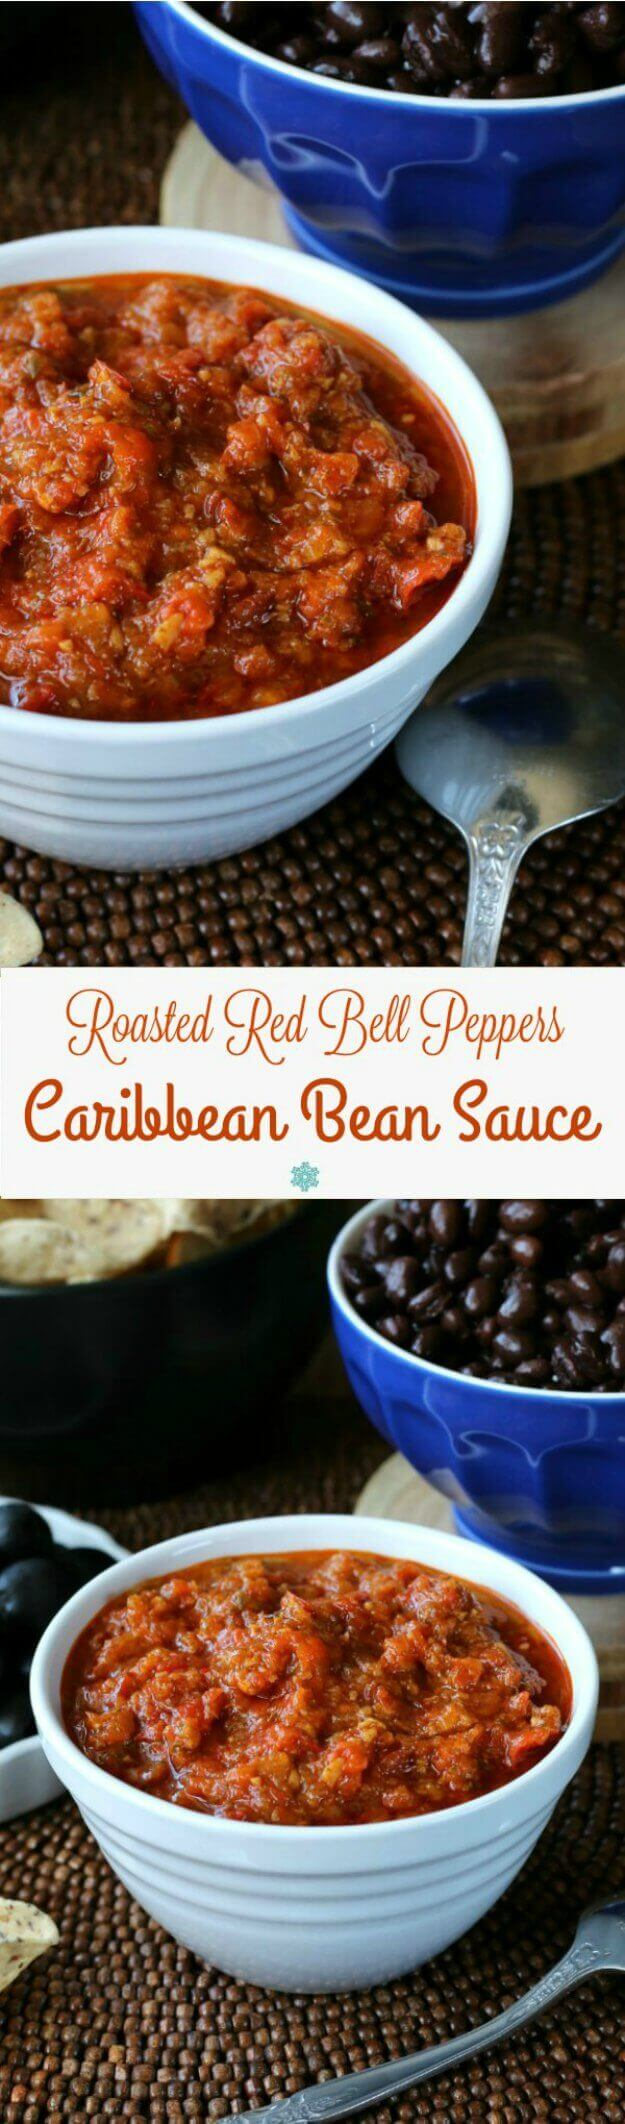 Roasted Red Bell Peppers Caribbean Bean Sauce is a must have for your condiment list. Served with beans but is a great dip too.